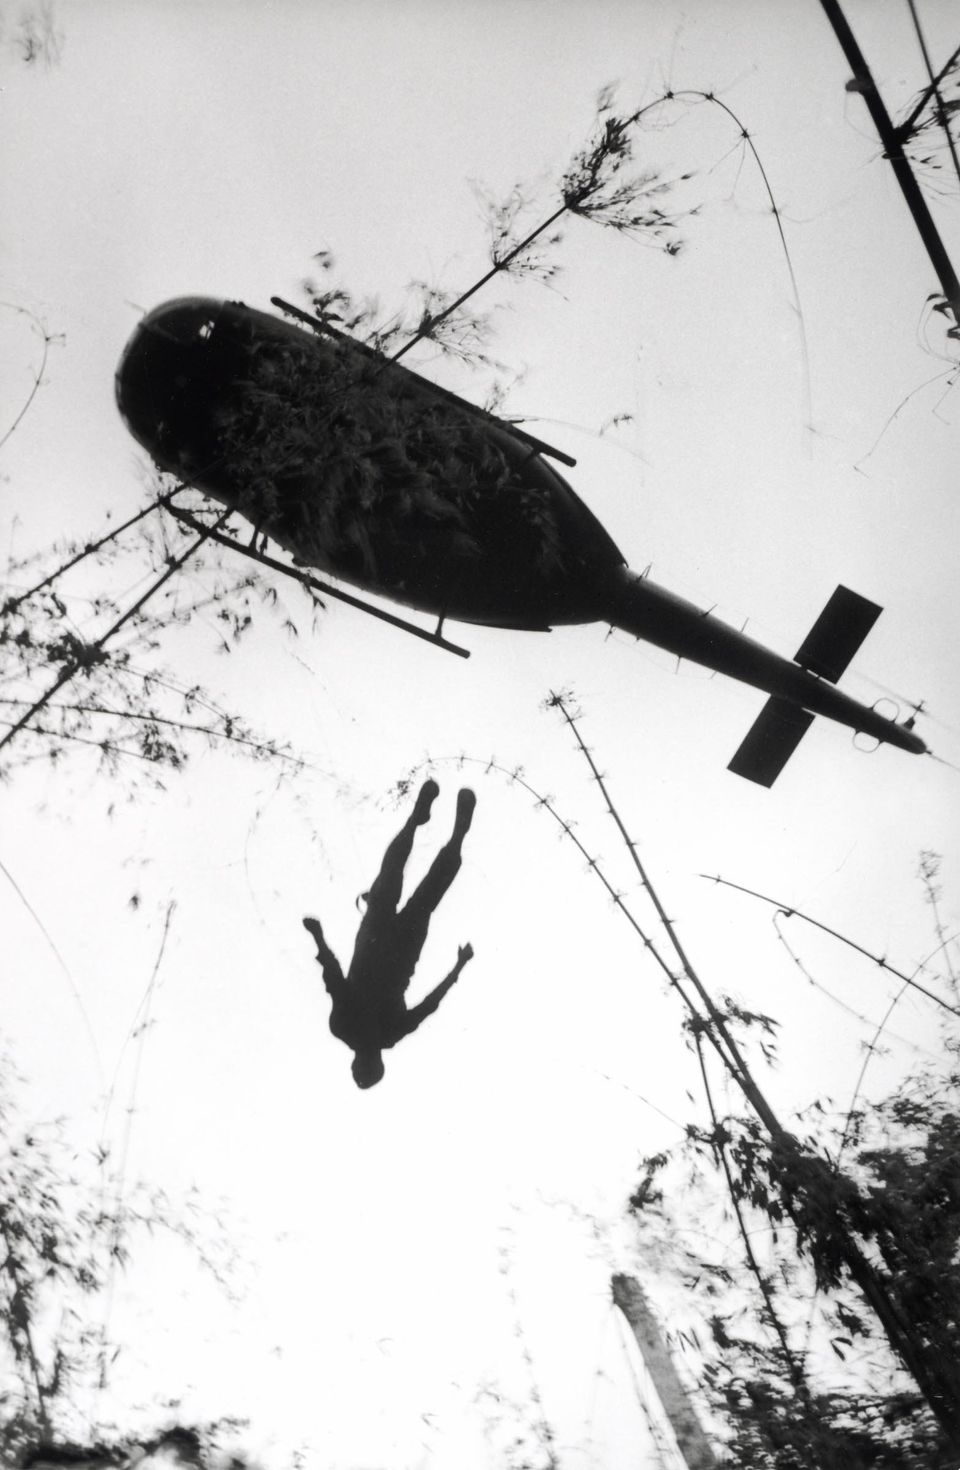 Henri Huet, French (1927-1971), The body of an American paratrooper killed in action in the jungle near the Cambodian border